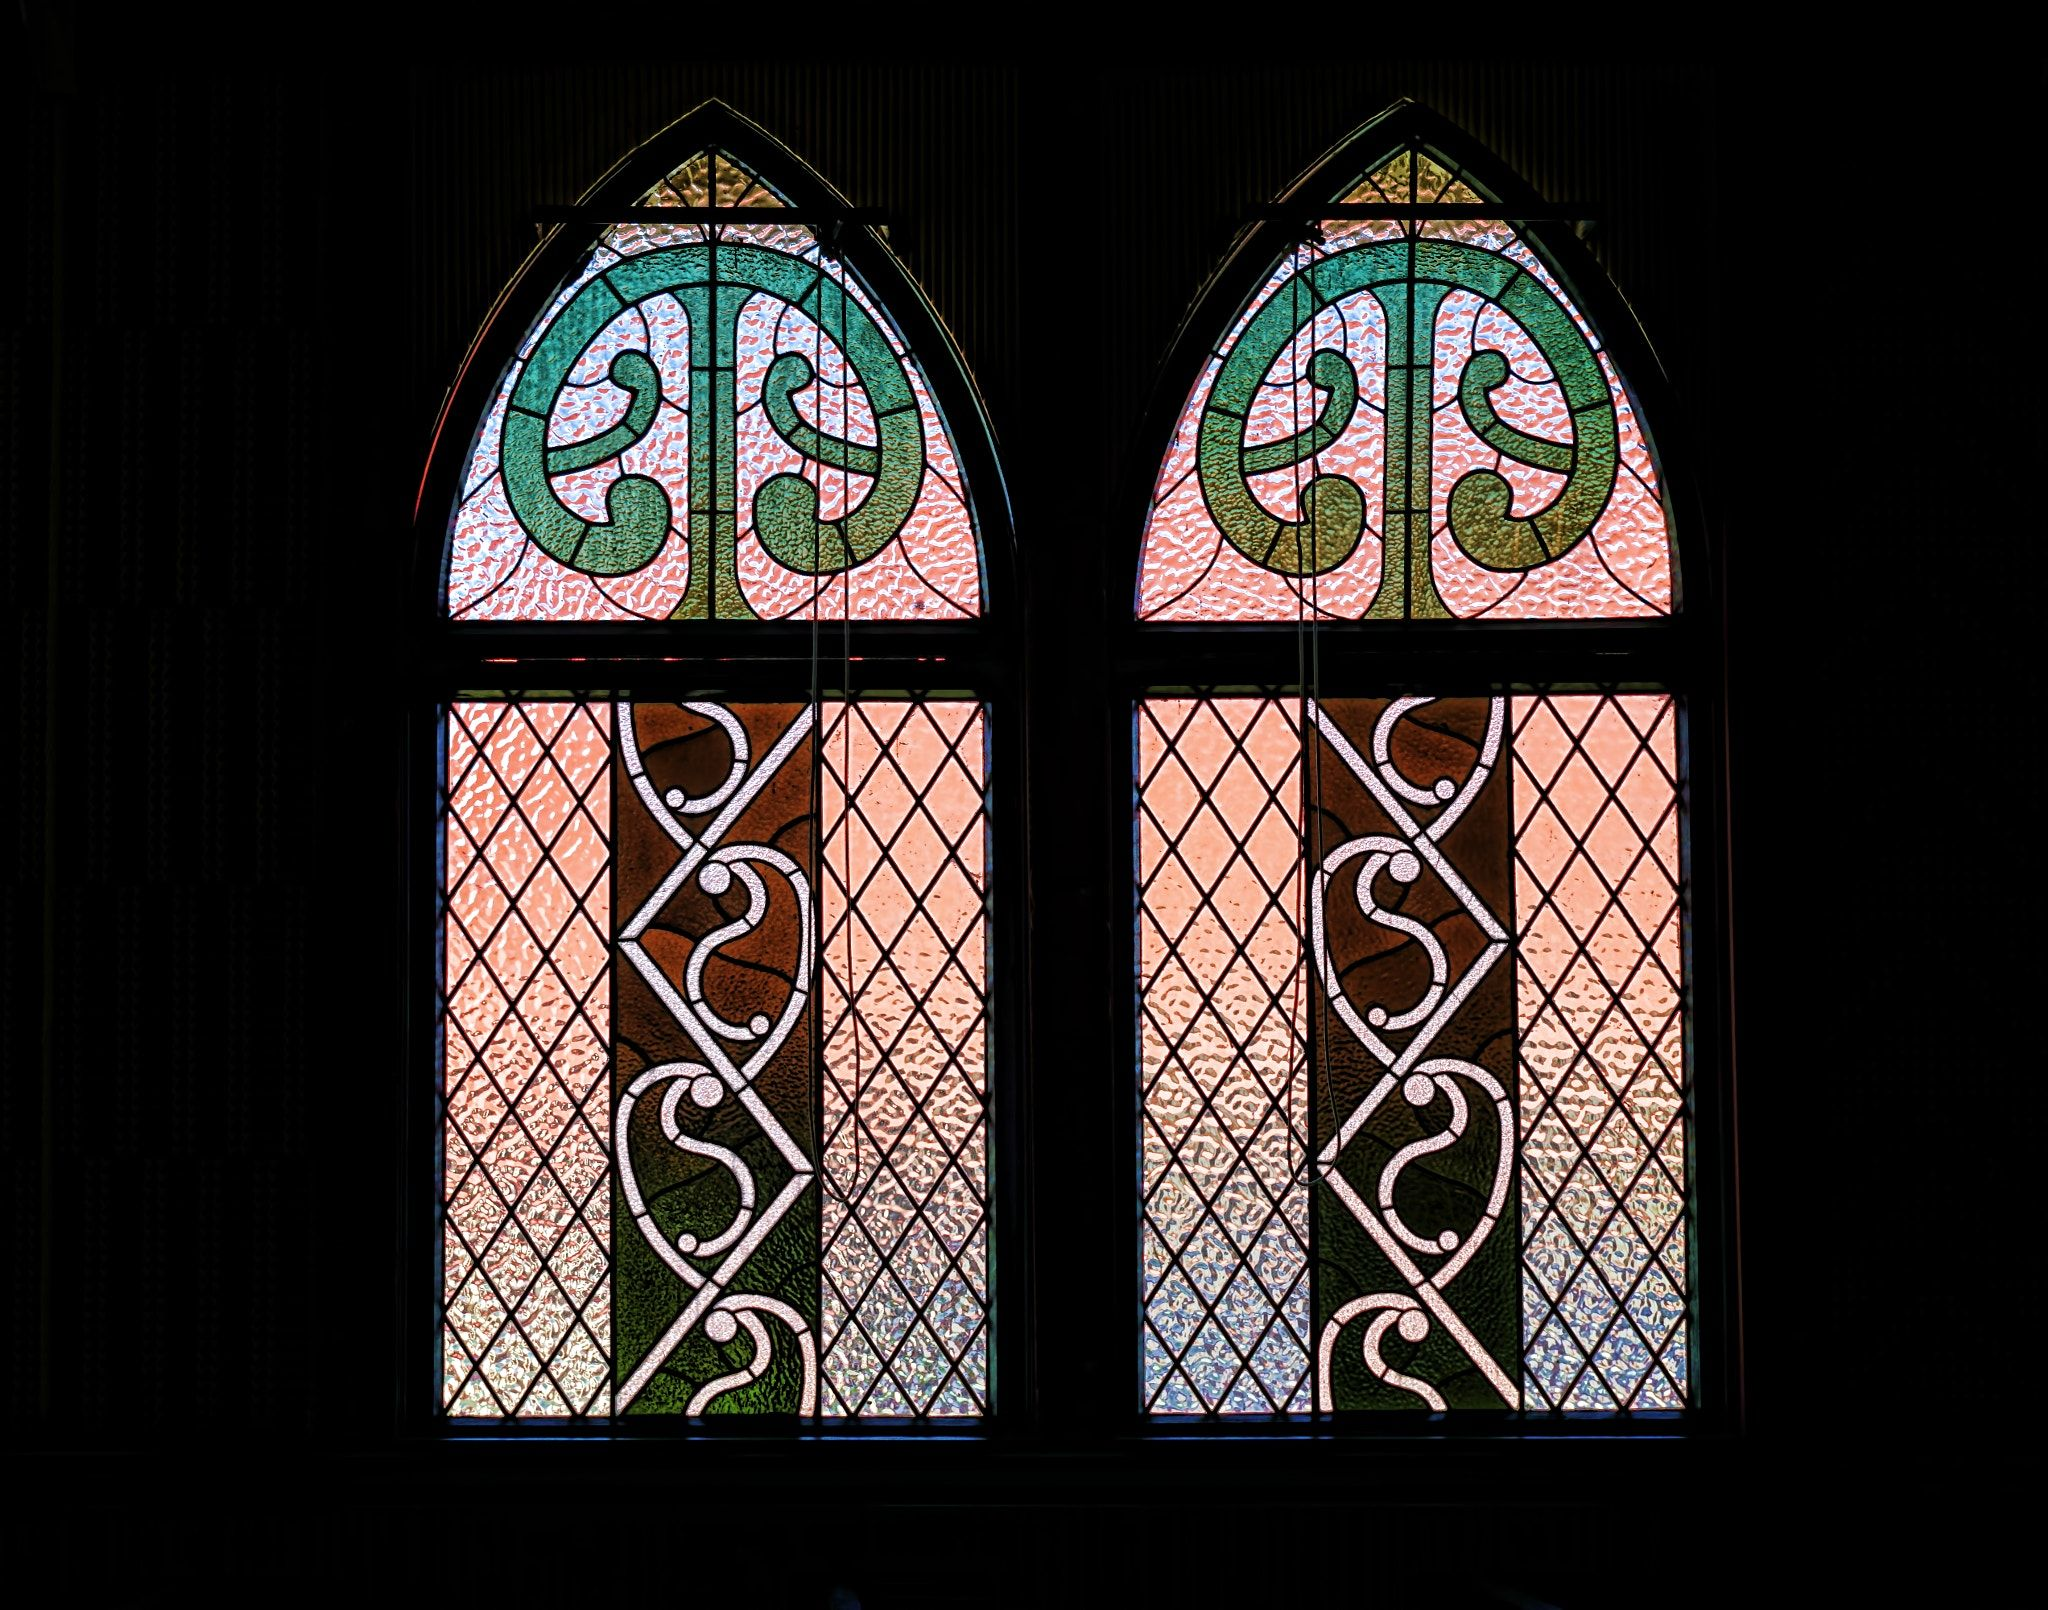 Franklin art glass studios inc clear cotswold glass 3 320 - Leadlight Widow St Faith S Anglican Church The Historic Timber Church In The Lakeside M Ori Village